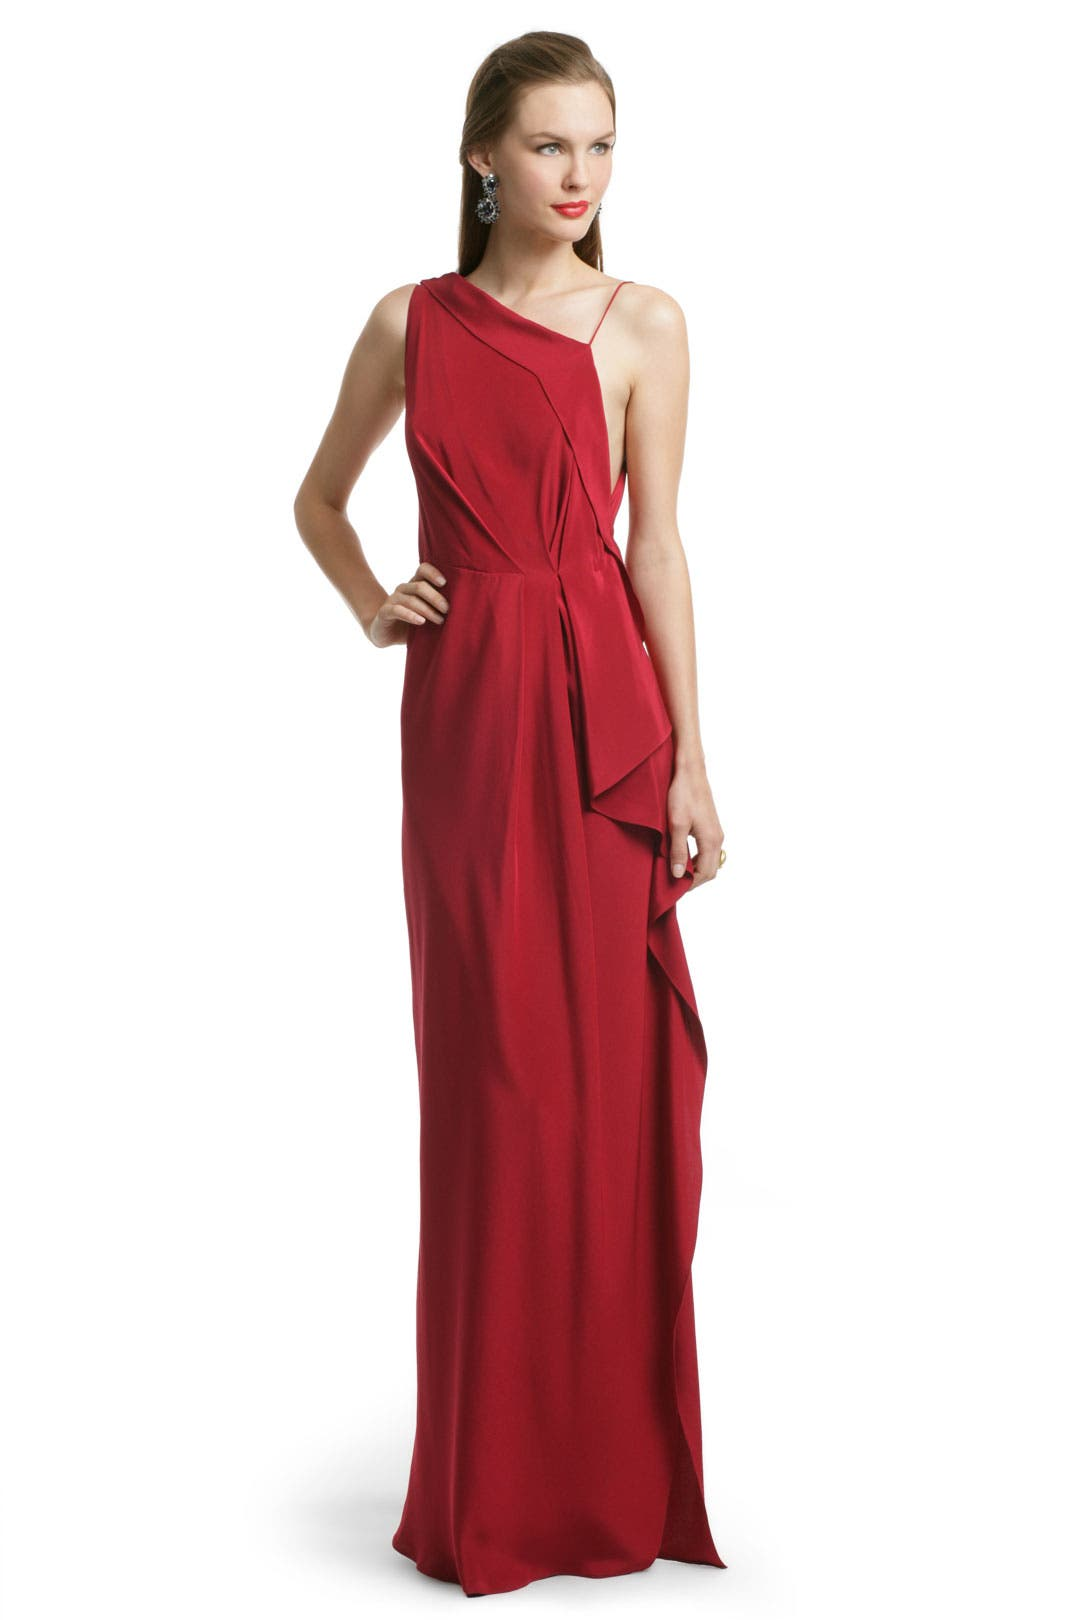 Red Moroccan Draped Gown by Roksanda Ilincic